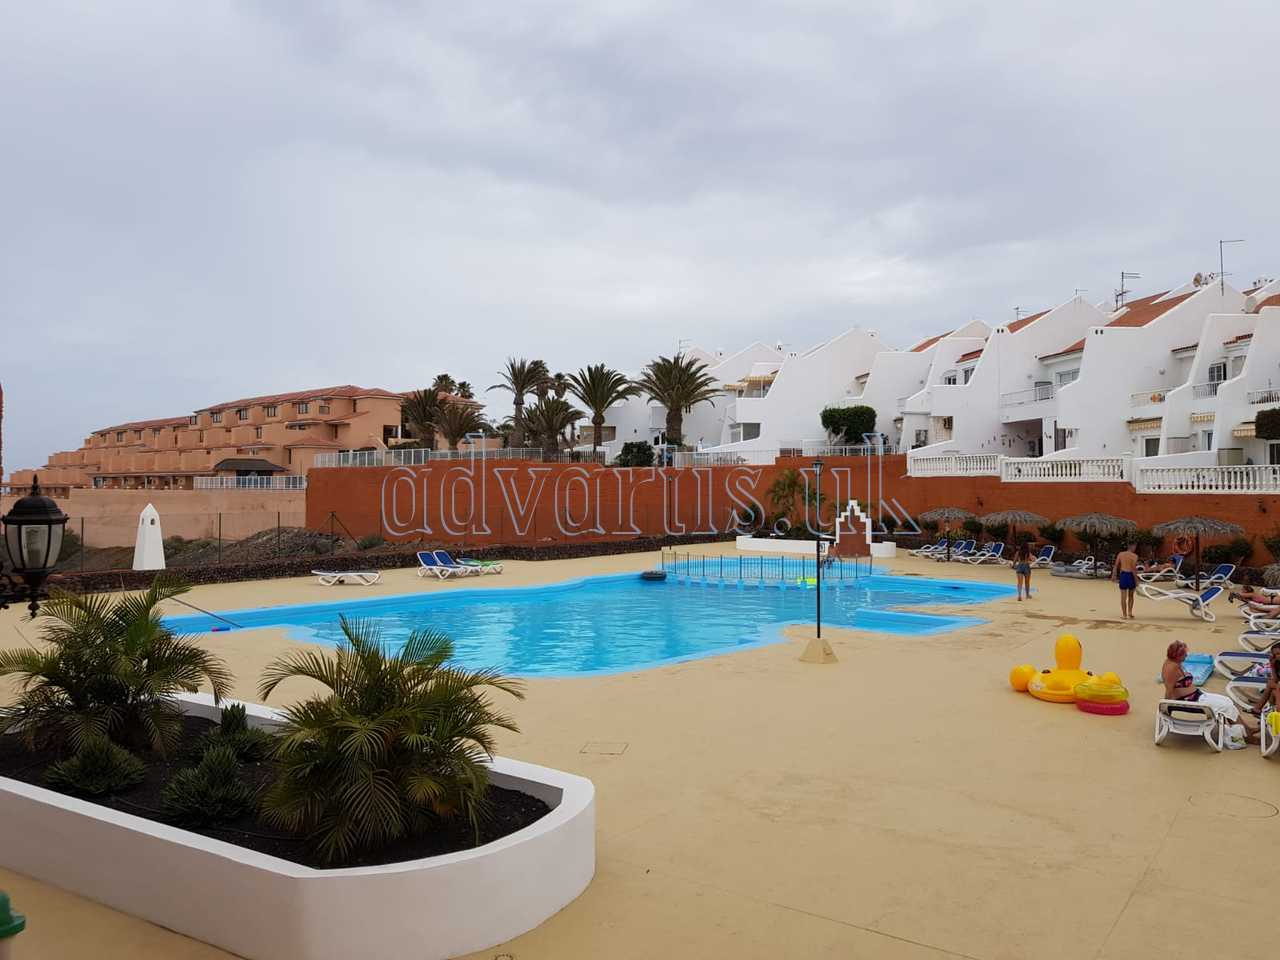 2 bedroom apartment for sale in Golf del Sur, Tenerife €152.000